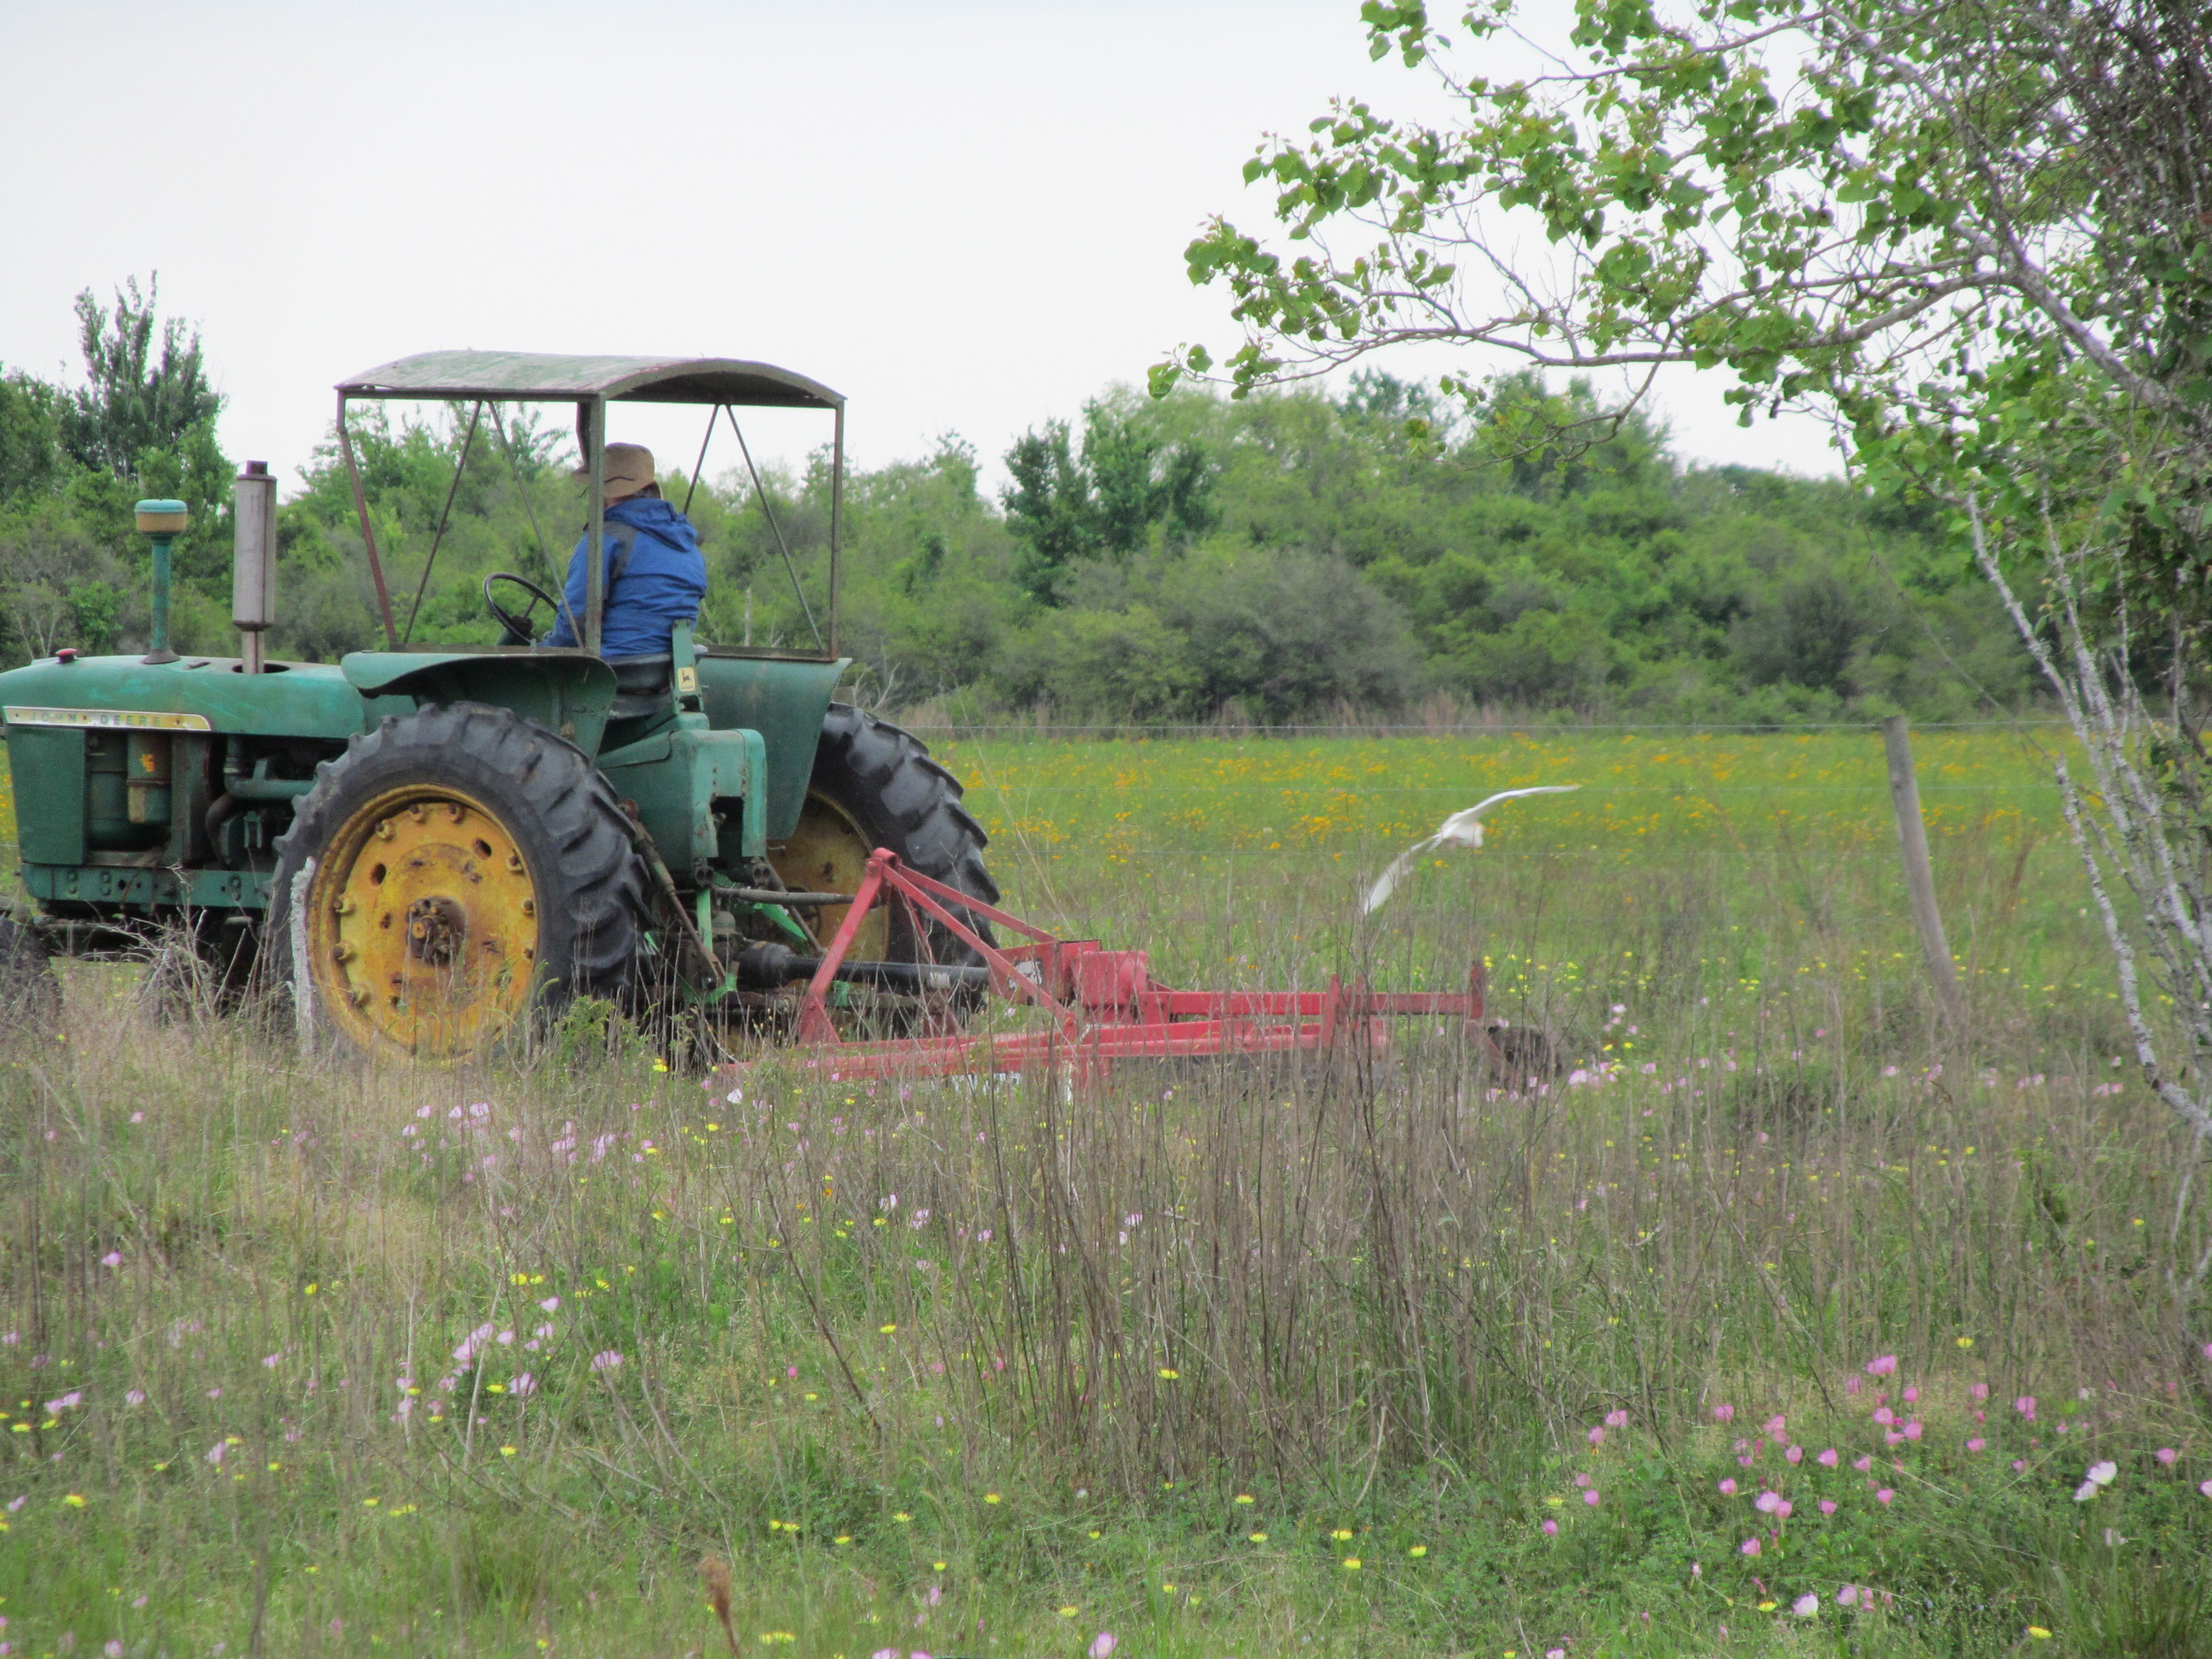 Farmer takes on the perimeter of the orchard, which has turned into quite the forest.